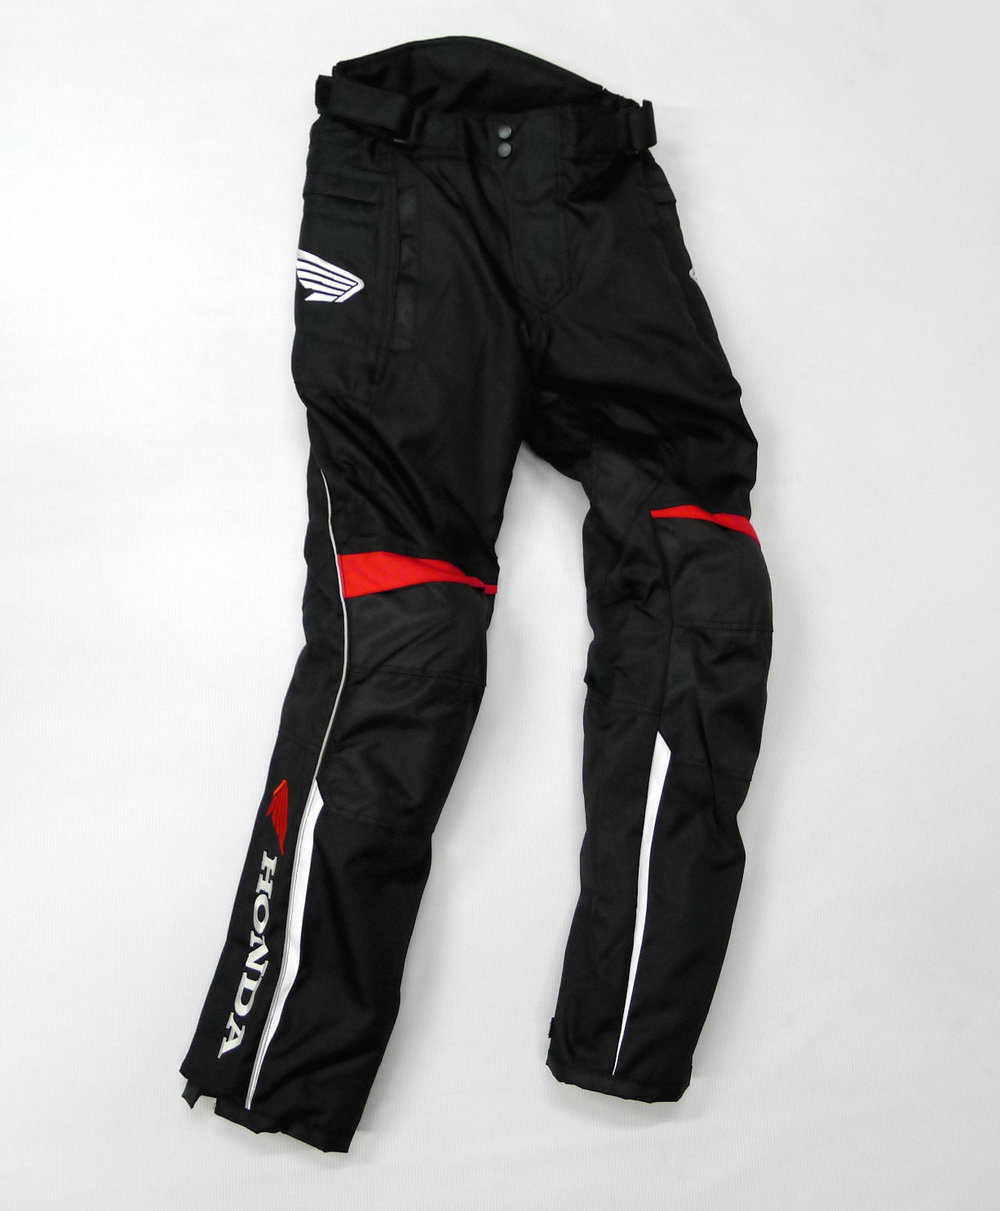 high quality warm windproof Cycling pantsmotorcycle pantsracing off-road pantsriding hockey pantsmotorcycle trousers